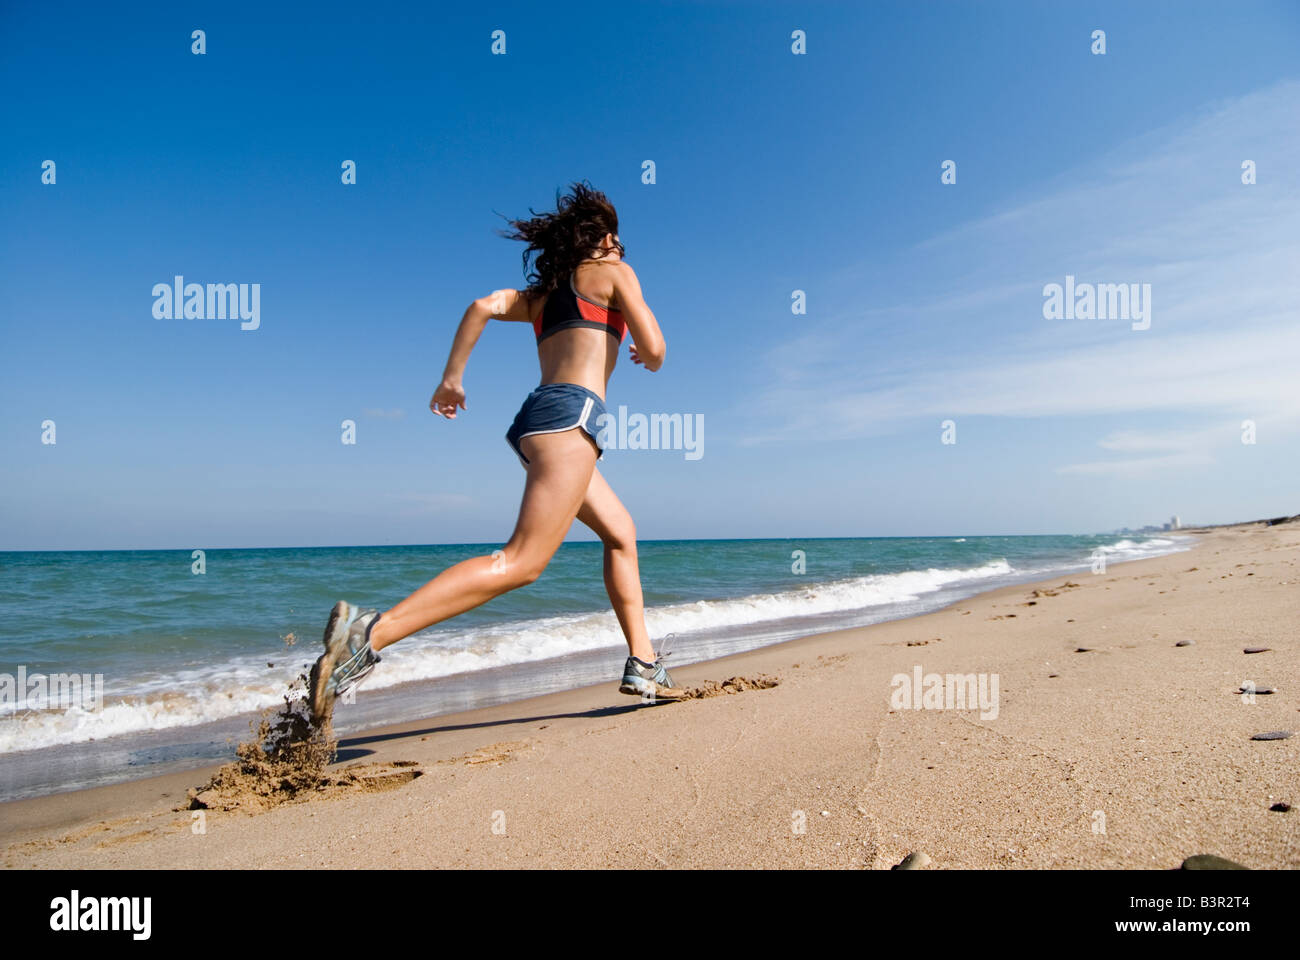 Model Released fit young woman running along shoreline of an empty sandy beach Stock Photo